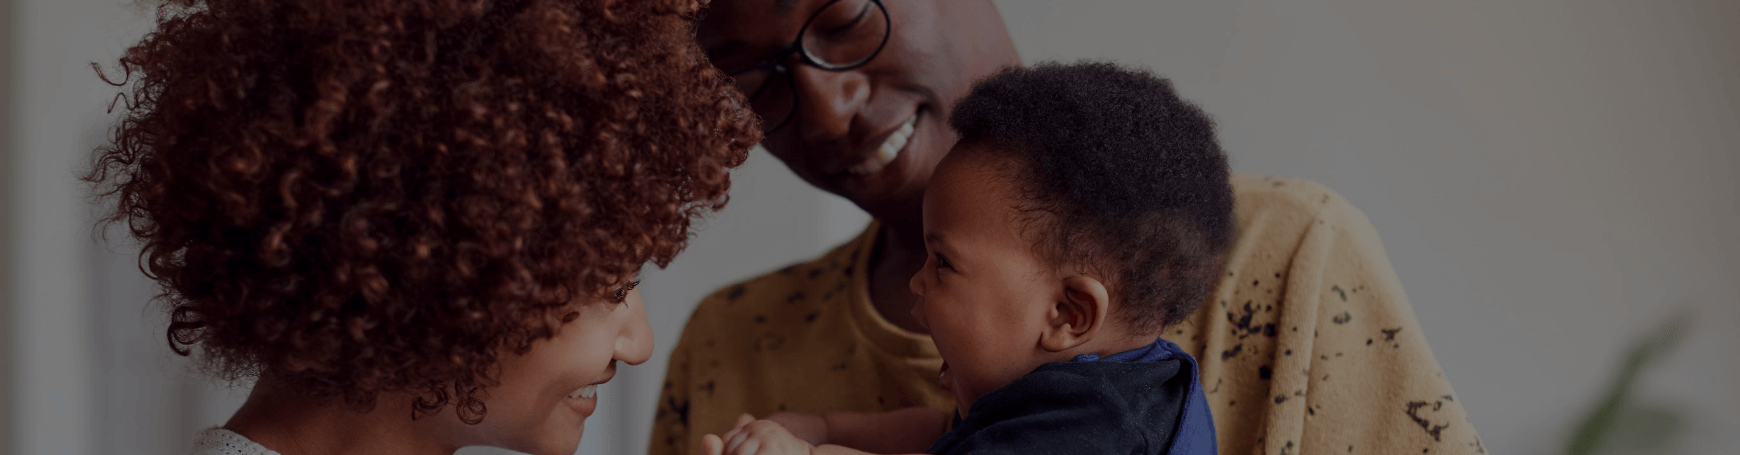 FSCB The Financial Readiness Guide for New Parents